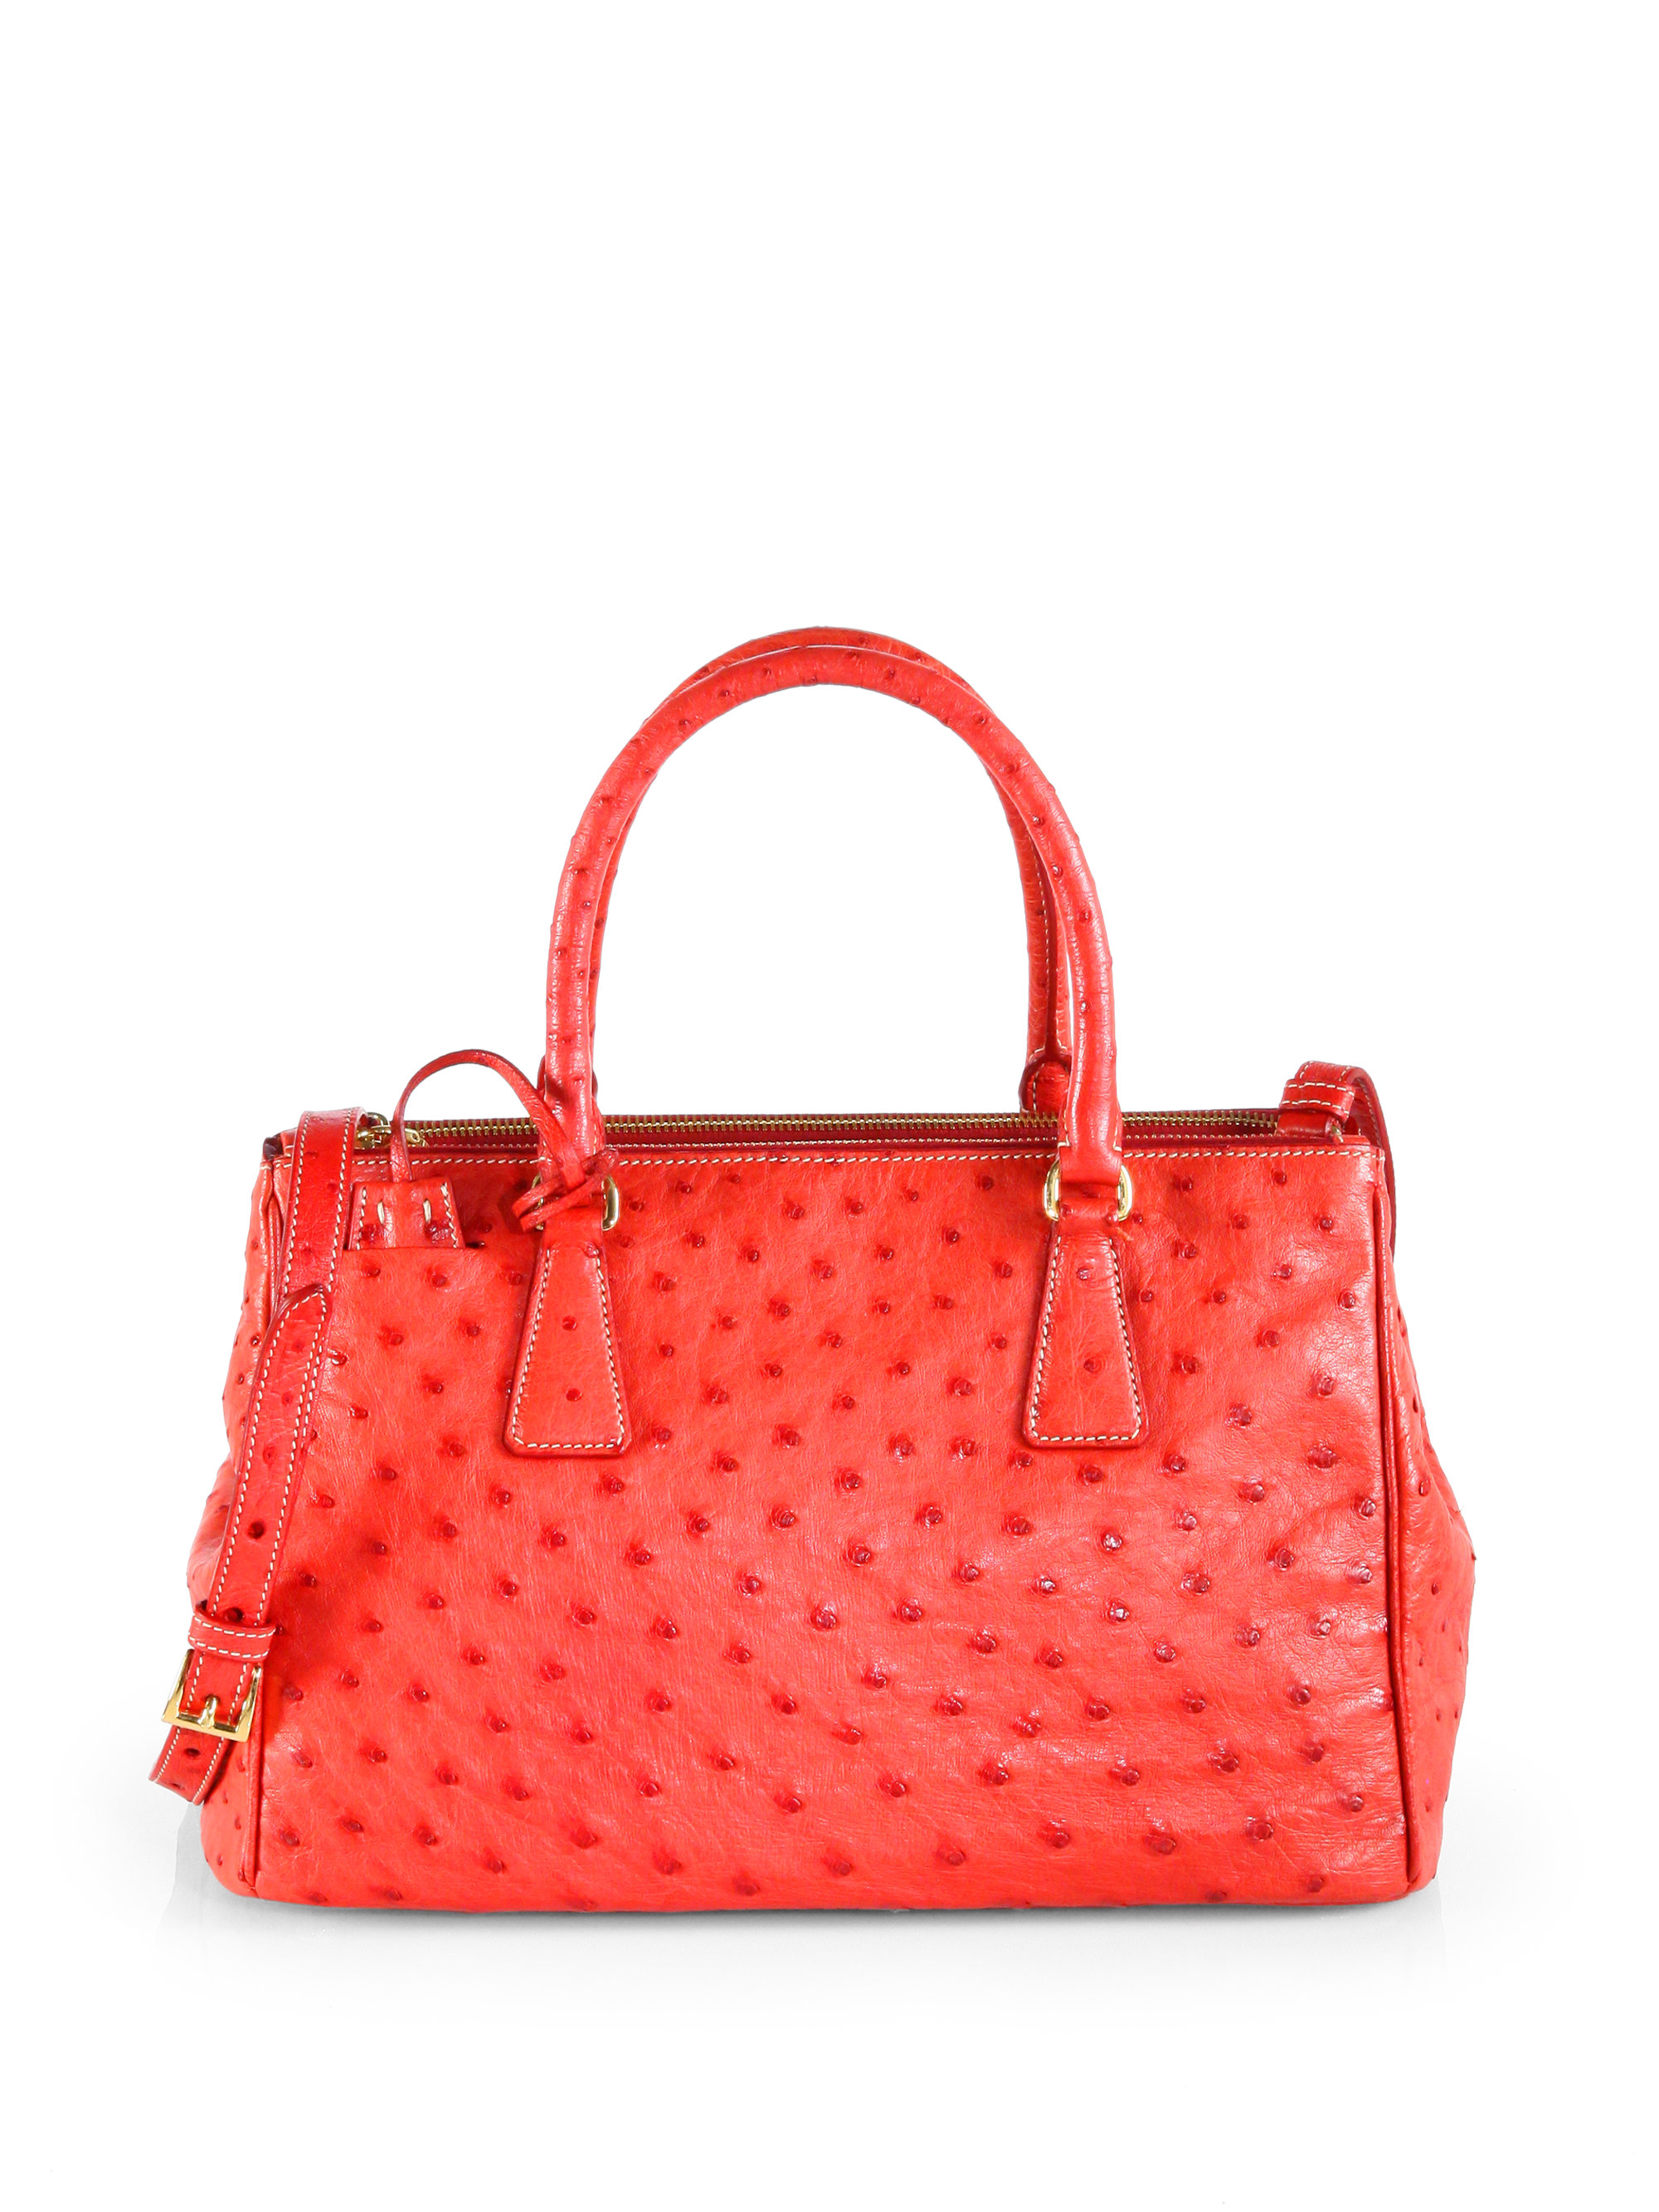 147689342dfe Prada Ostrich Double Zip Tote in Red - Lyst